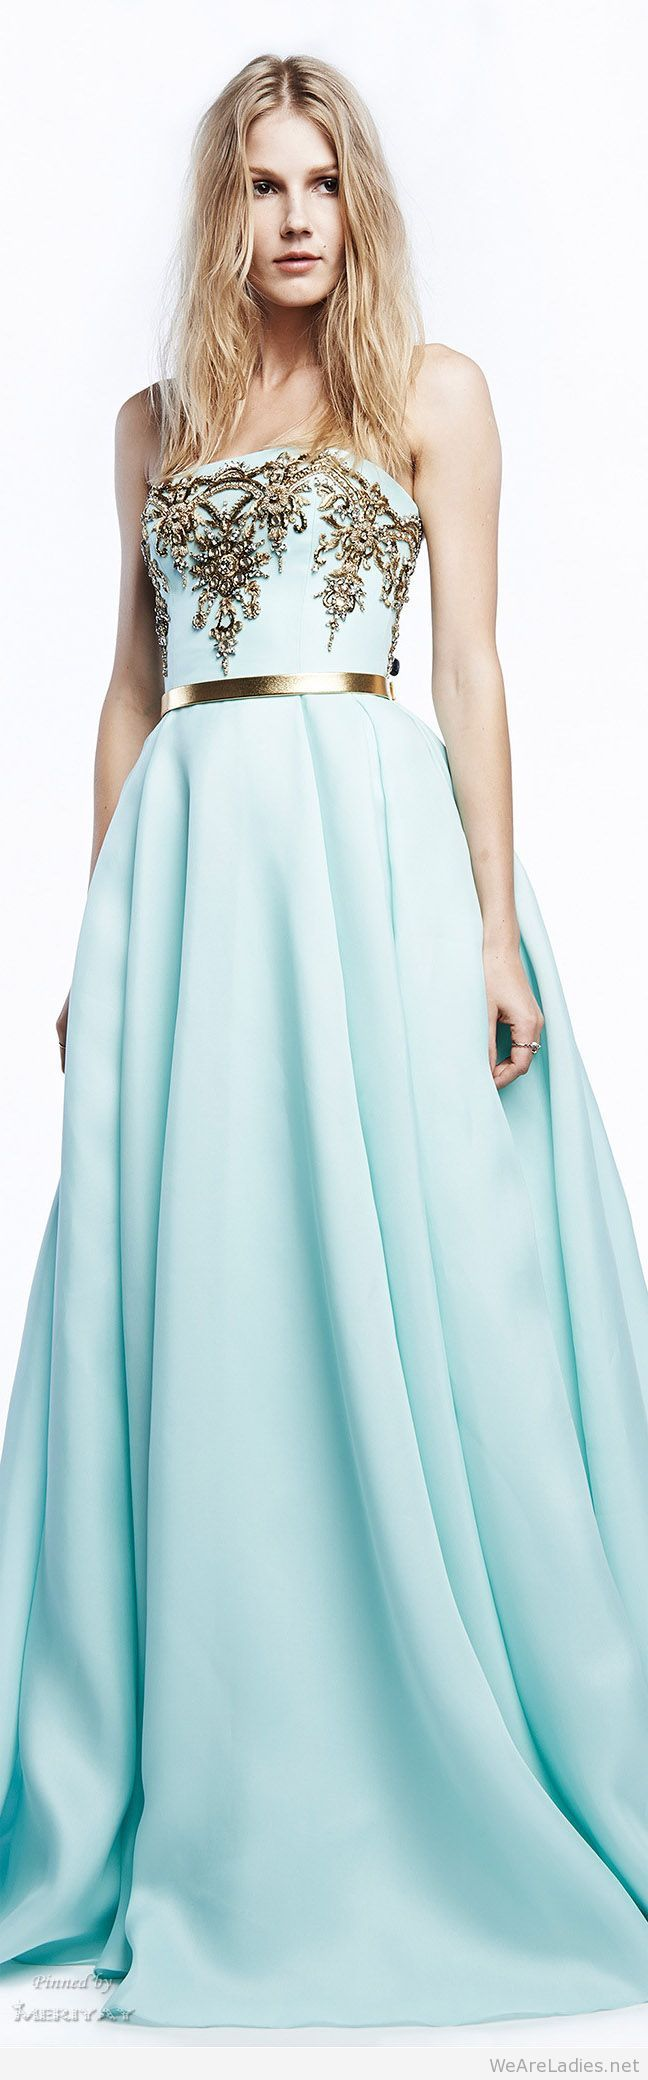 Long light blue dress with gold details we are ladiesss